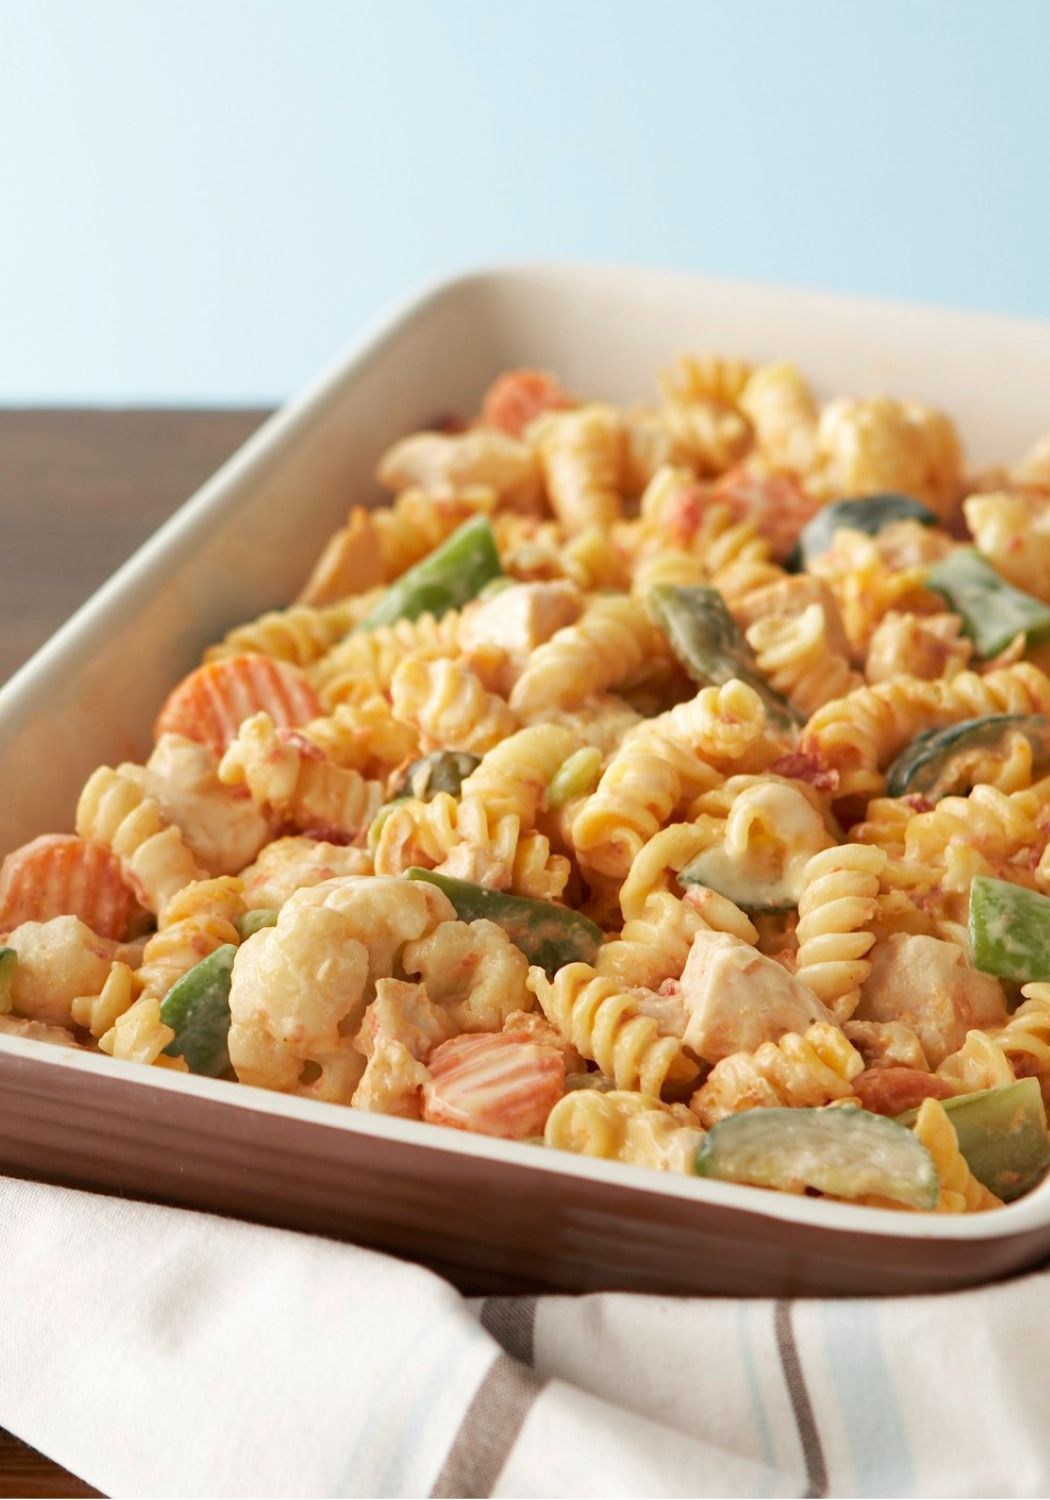 Easy vegetable pasta casserole recipes